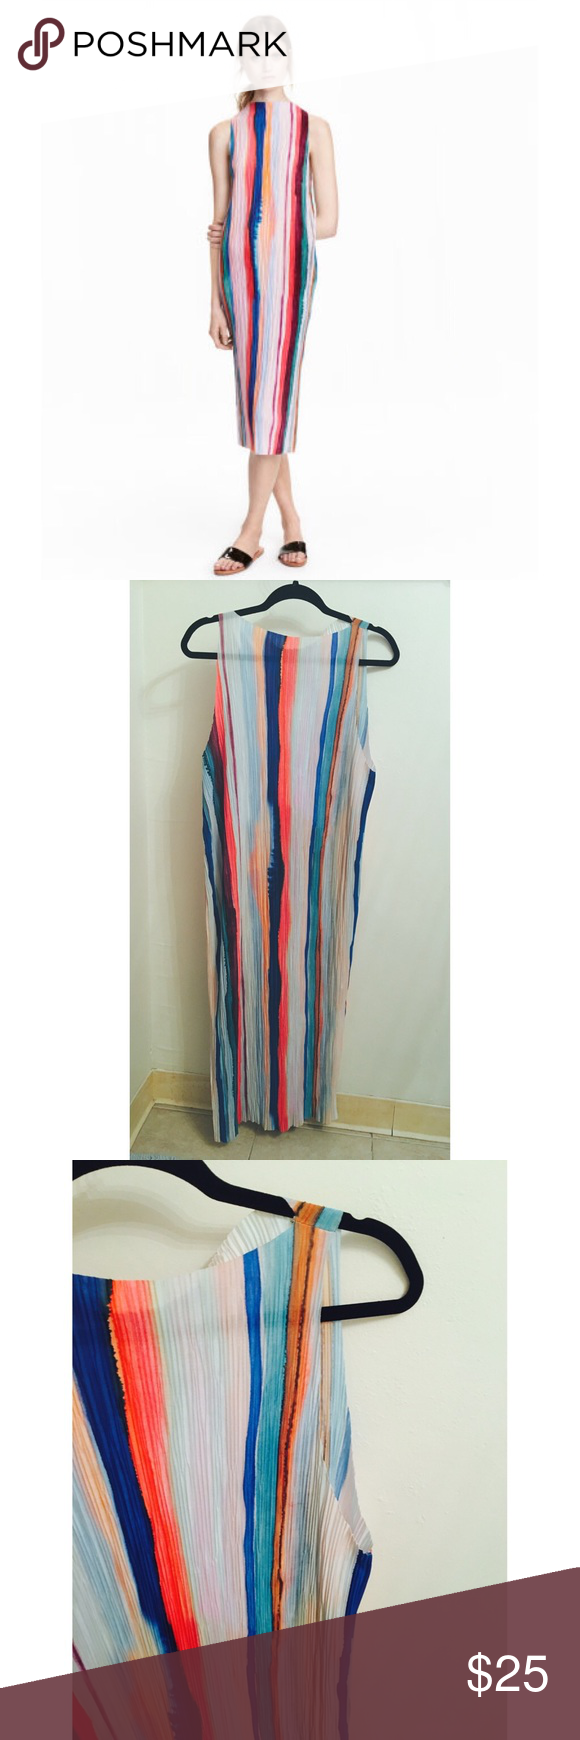 H&M multicolor striped dress! Pleated • light fabric • to short slits on either side at the bottom of the dress • only worn a few times H&M Dresses